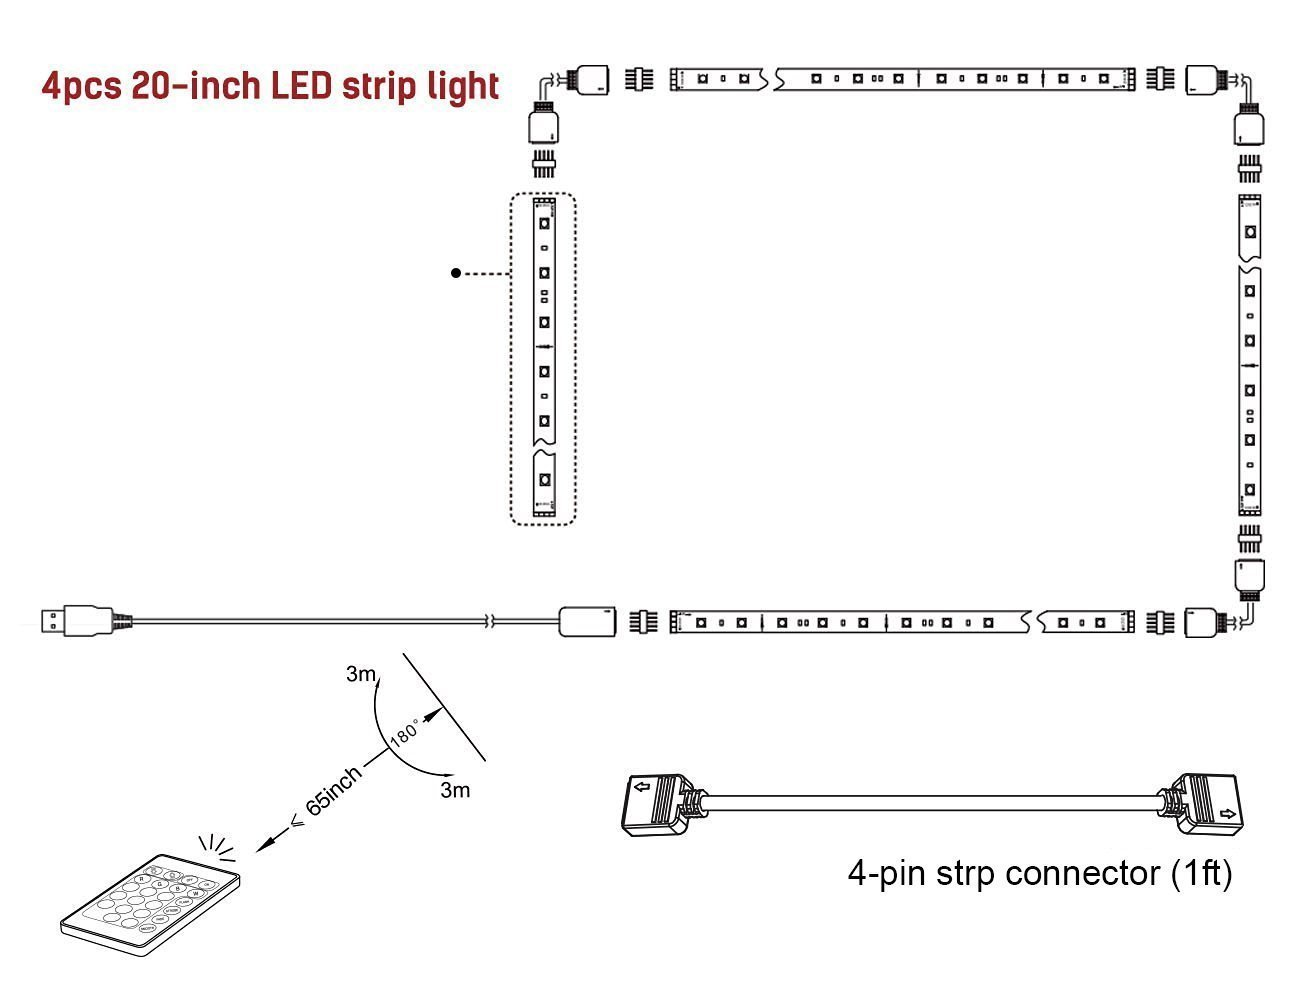 Aveylum Usb Led Light Strip 5050 Rgb Backlight Tape Wiring A 3 Pin Plug Worksheet Lights 4pcs 20 Inch Waterproof Background Lighting With 44 Keys Remote Control For Tv